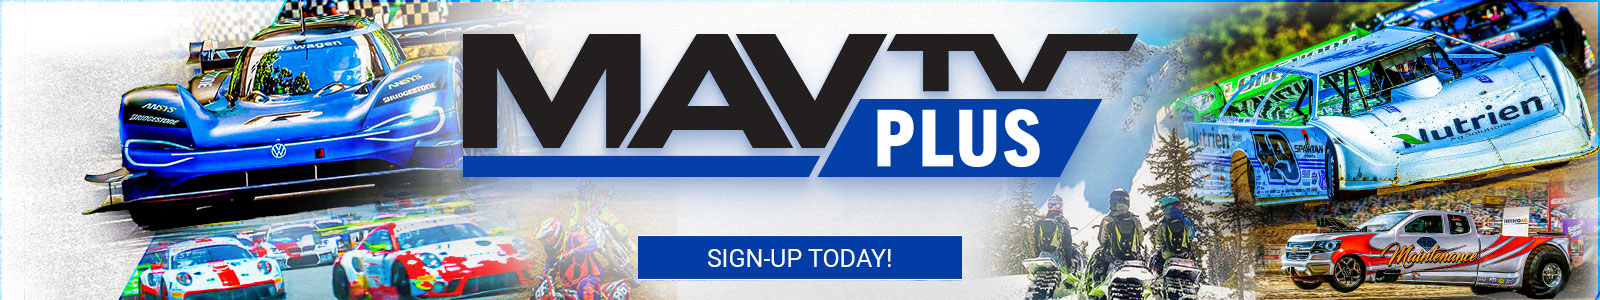 Sign-Up Today for MAVTV Plus!